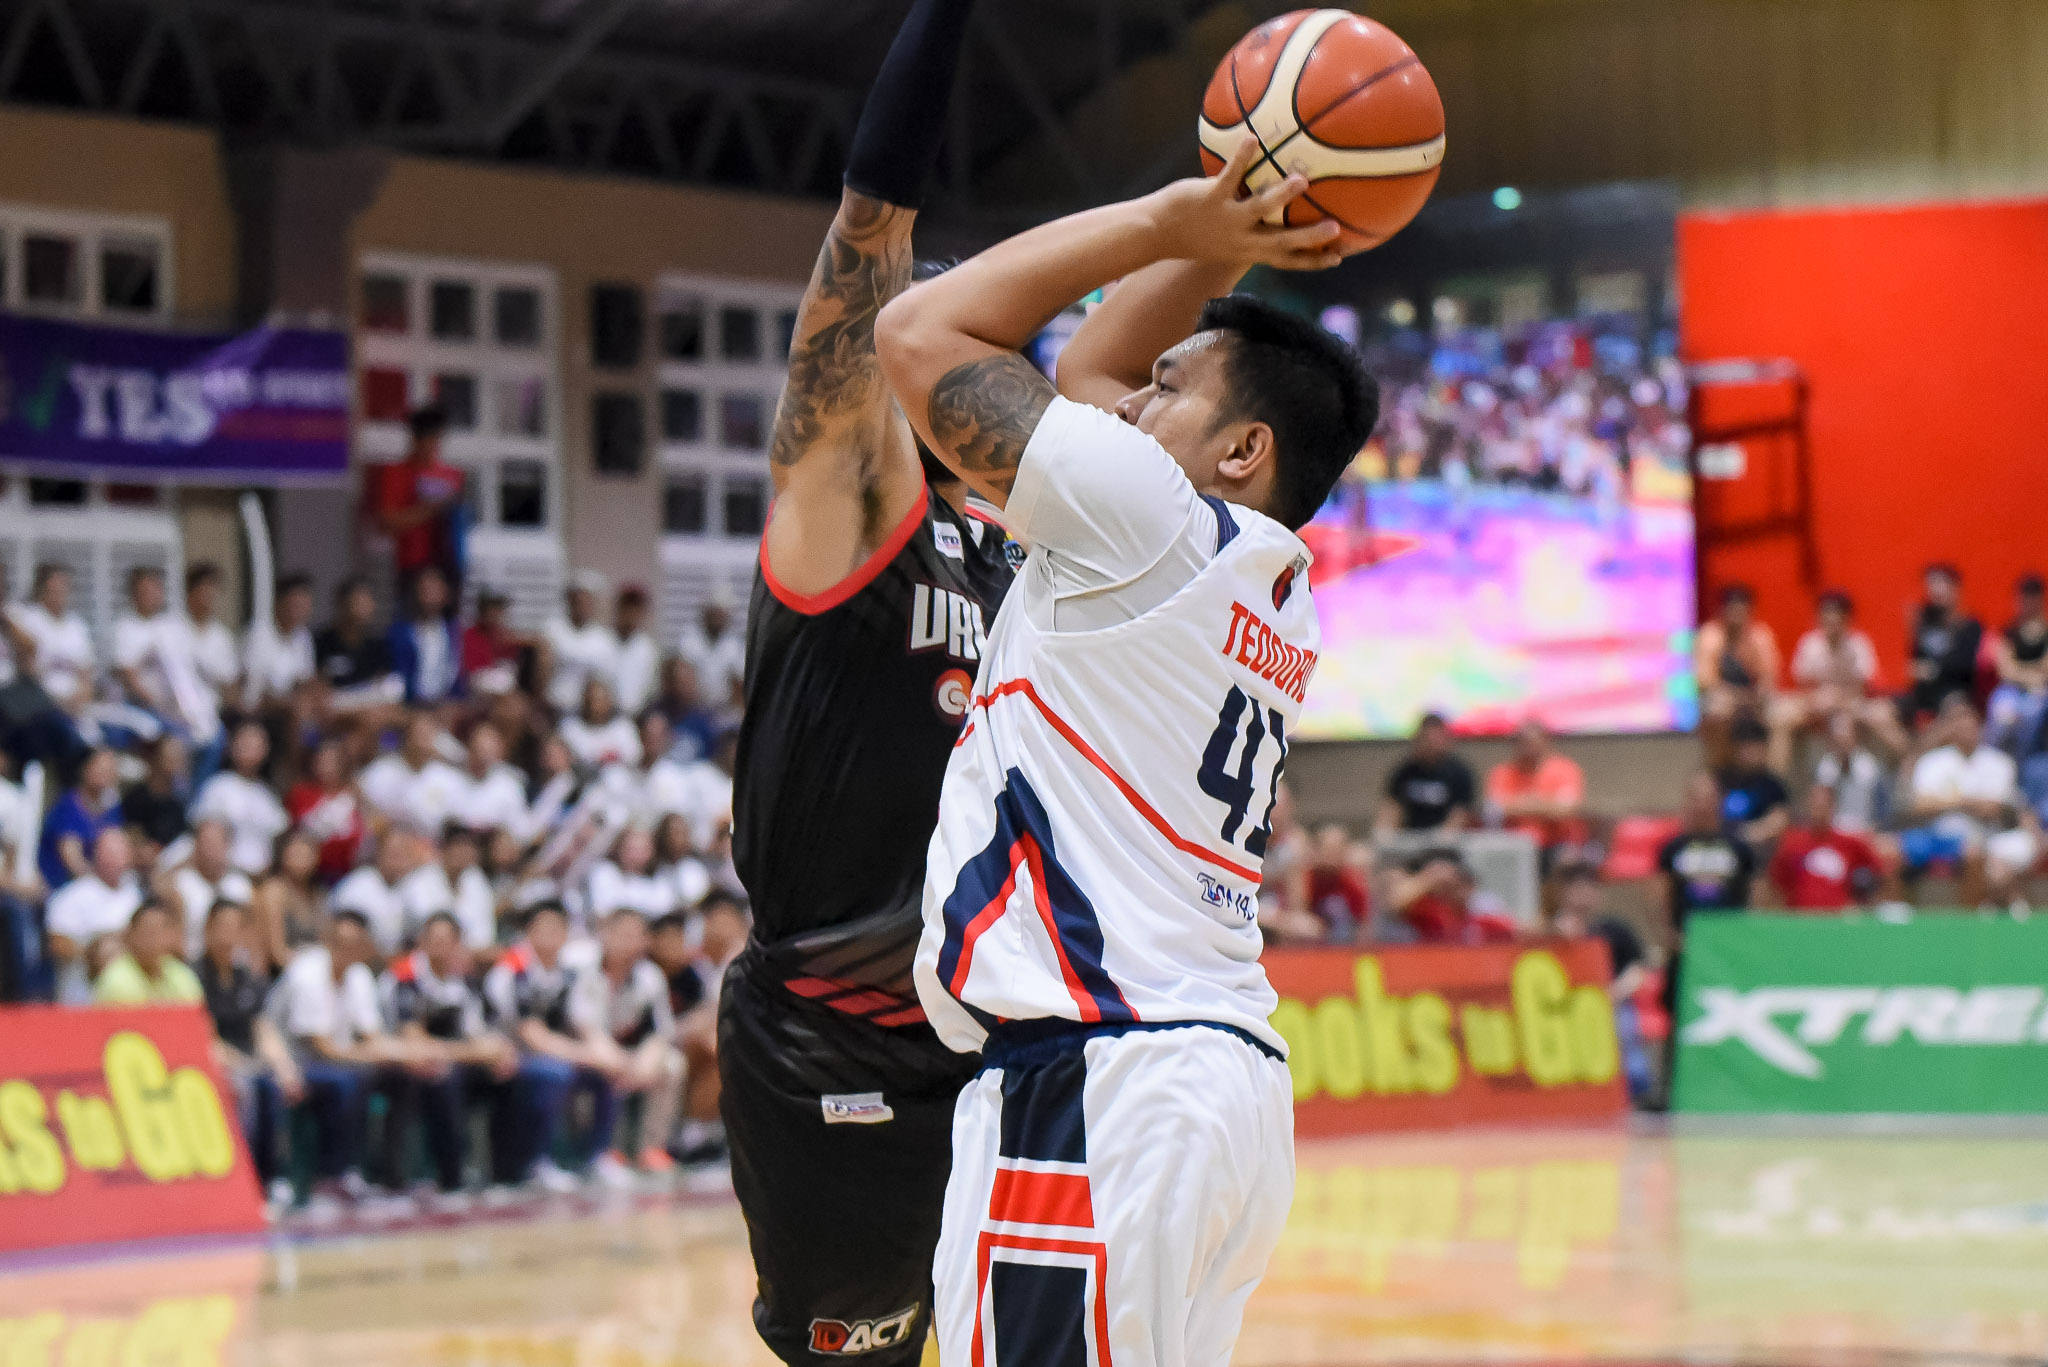 Tiebreaker Times Teytey Teodoro makes MPBL return as shorthanded Batangas spoils Valenzuela's season finale Basketball MPBL News  Woody Co Valenzuela Classic Teytey Teodoro Ryusei Koga Reneford Ruaya Jhaymo Eguilos Jaymar Gimpayan Batangas City-Tanduay Athletics 2019-20 MPBL Lakan Cup